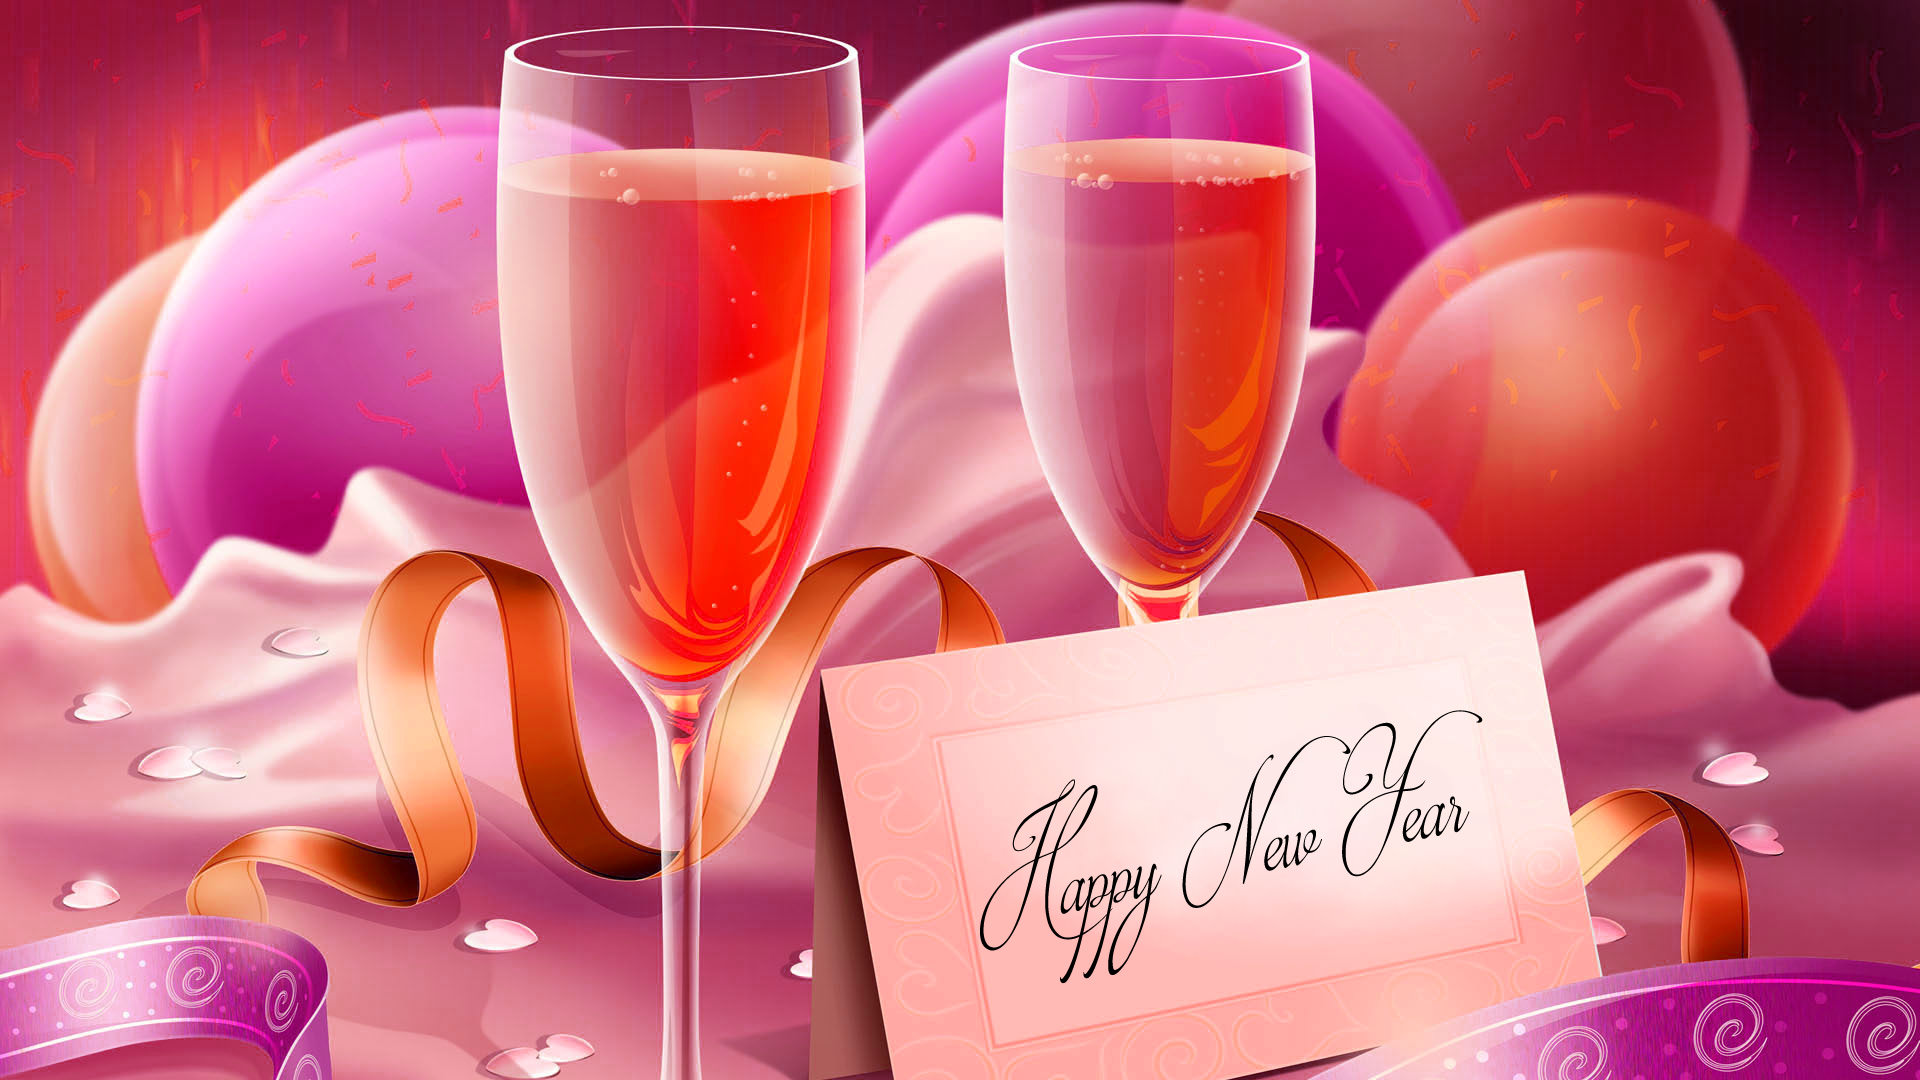 happy new year wallpapers with wine glasses